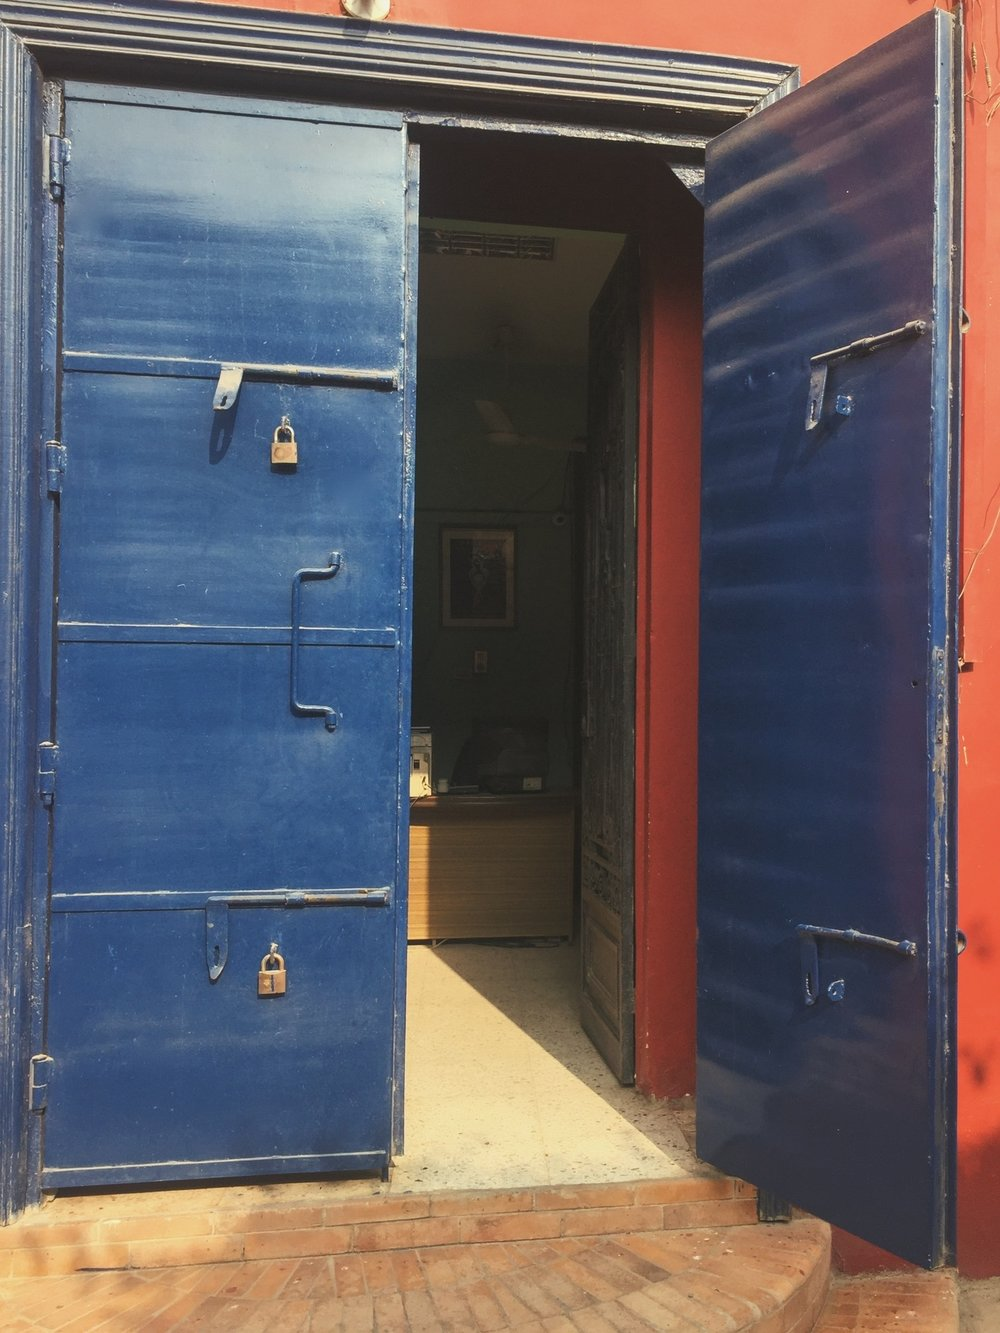 The enchanting blue door that leads into the factory ...